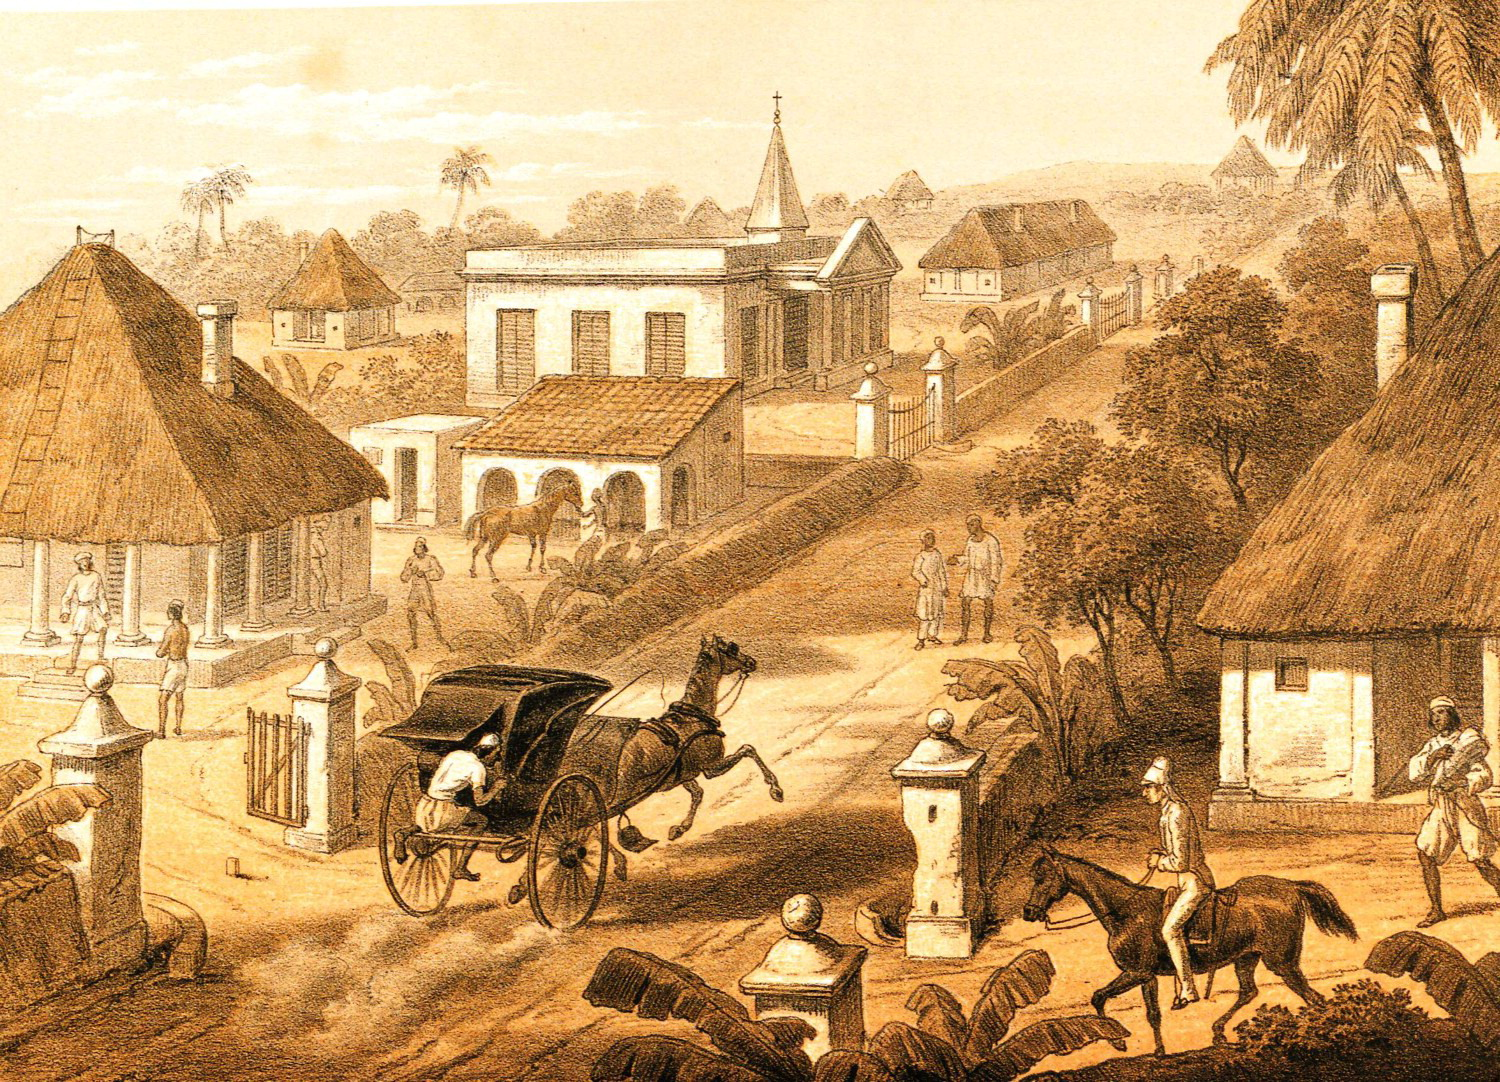 A provincial administrative town in colonial Bengal. George Francklin Atkinson, Our Station, Plate 1, lithograph, from Atkinson, Curry and Rice (On Forty Plates) Or the Ingredients of Social Life at Our Station in India (London: Day & Son, 1859), © British Library Board, 1264.e.16